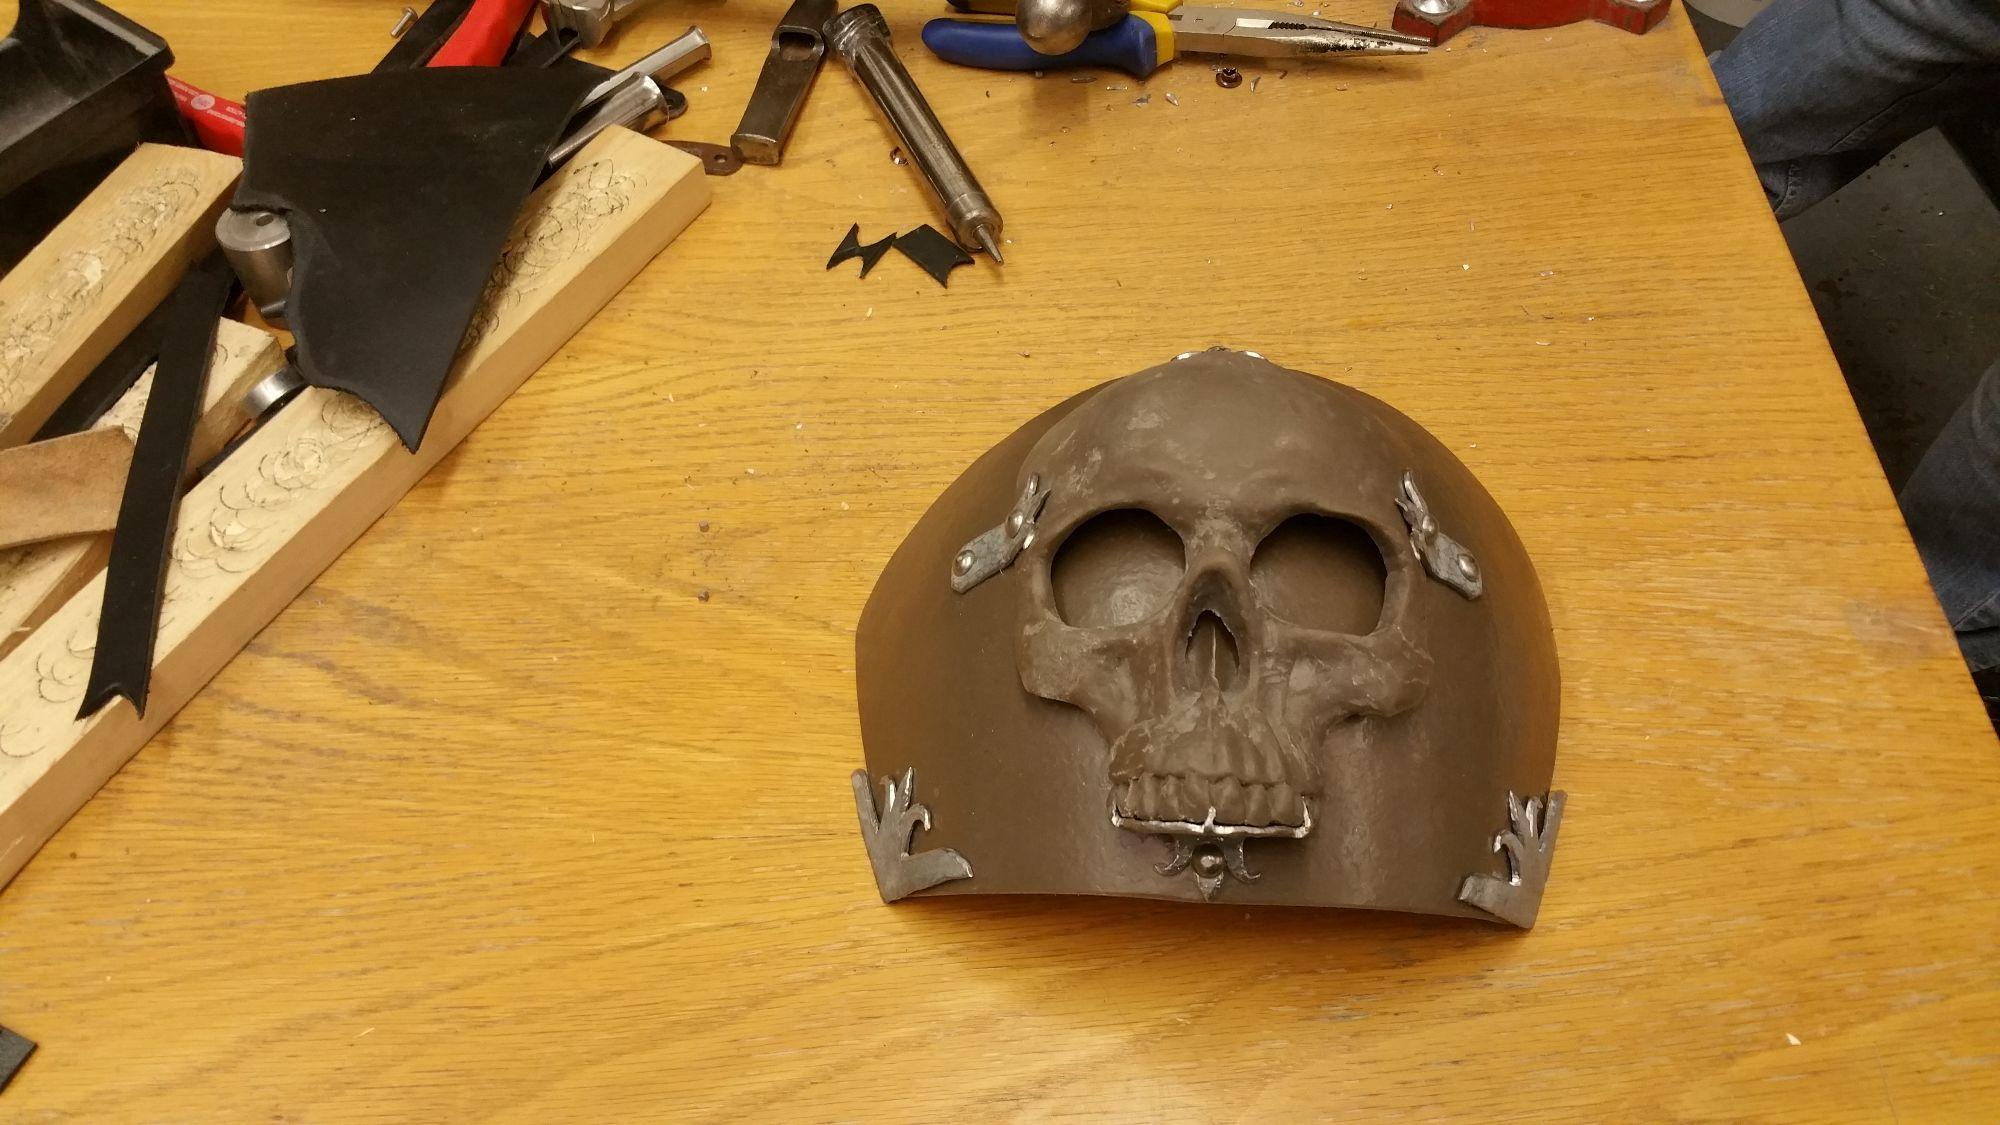 Ominous skull pauldron in progress